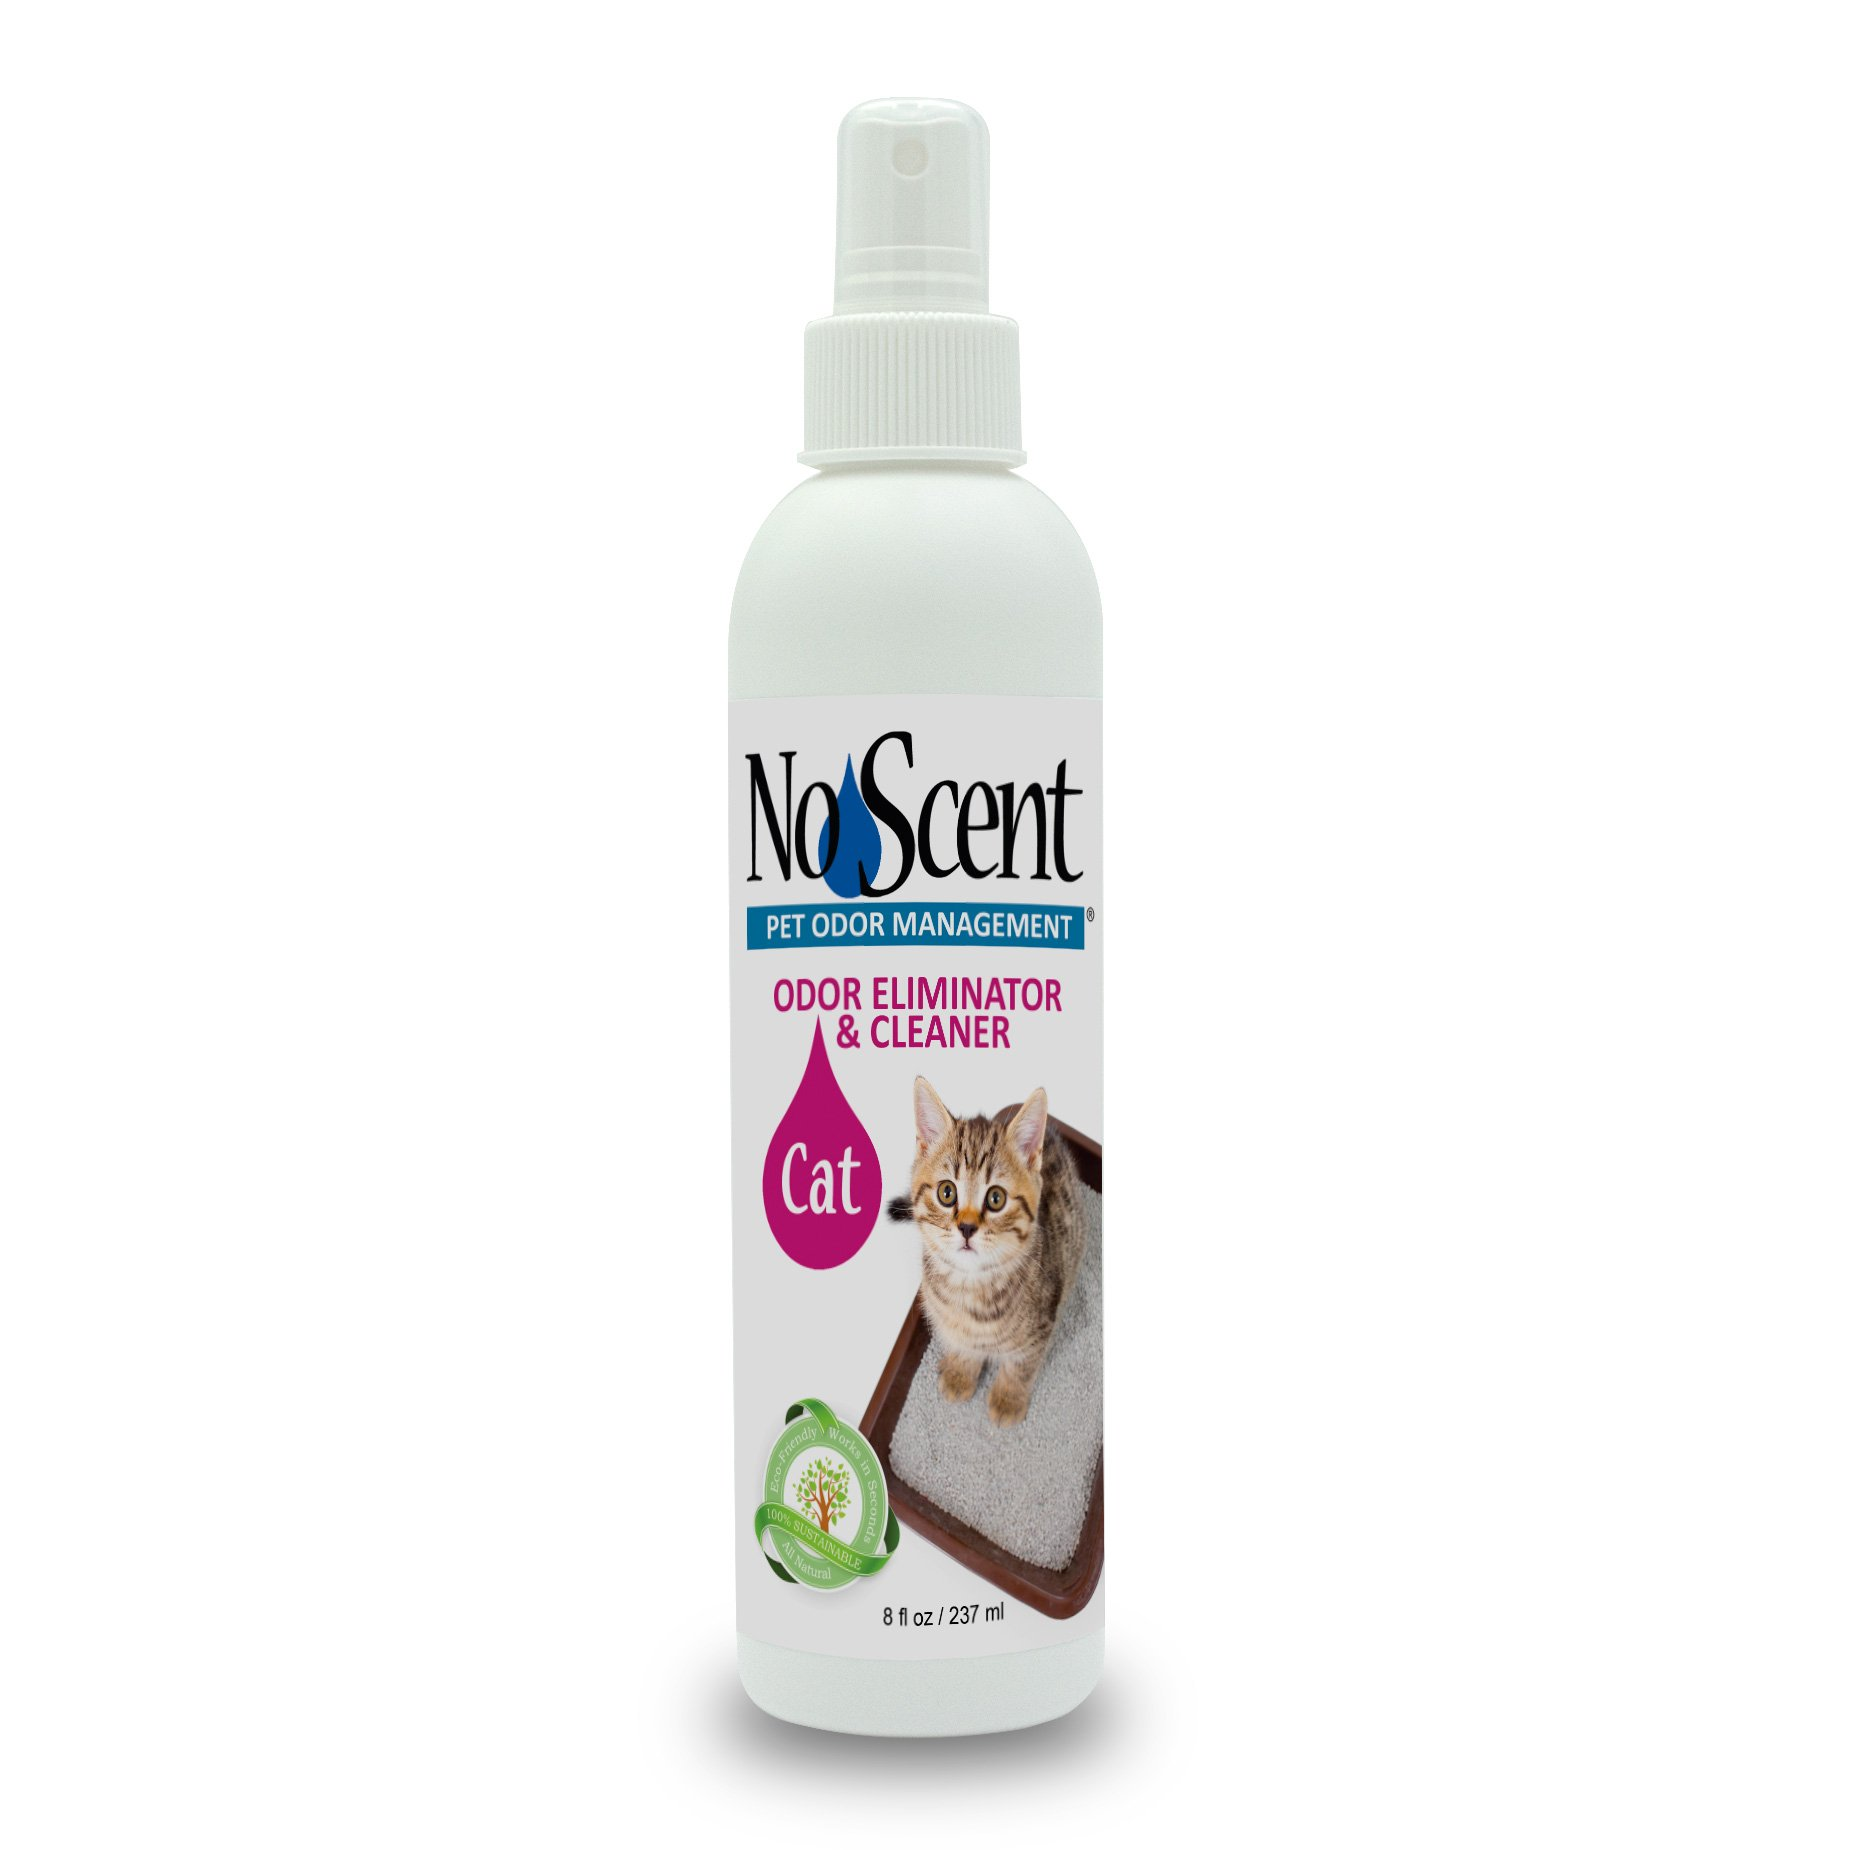 No Scent Cat - Professional Pet Urine Feces Odor Eliminator Cleaner - Safe All Natural Probiotic & Enzyme Formula Smell Remover Litter Box Hardwood Carpet Floors Upholstery (8 oz)